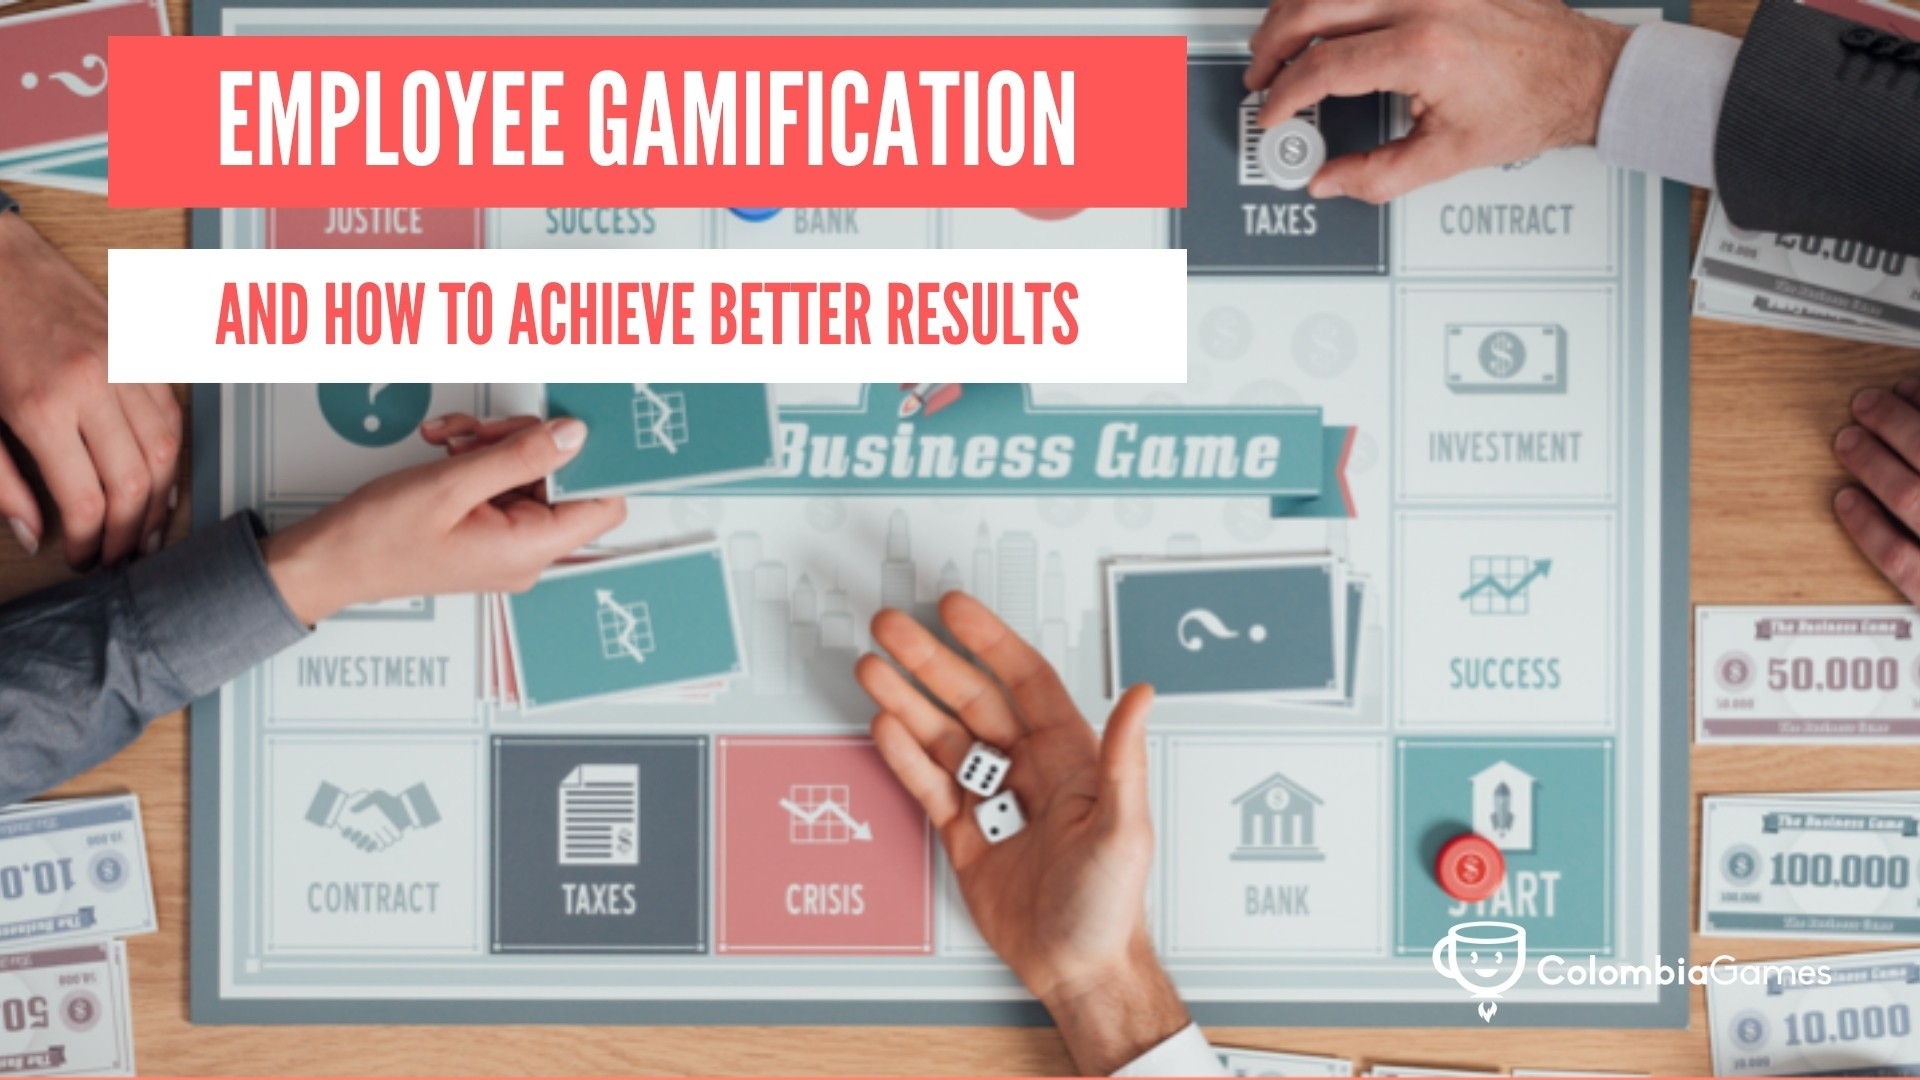 employee gamification